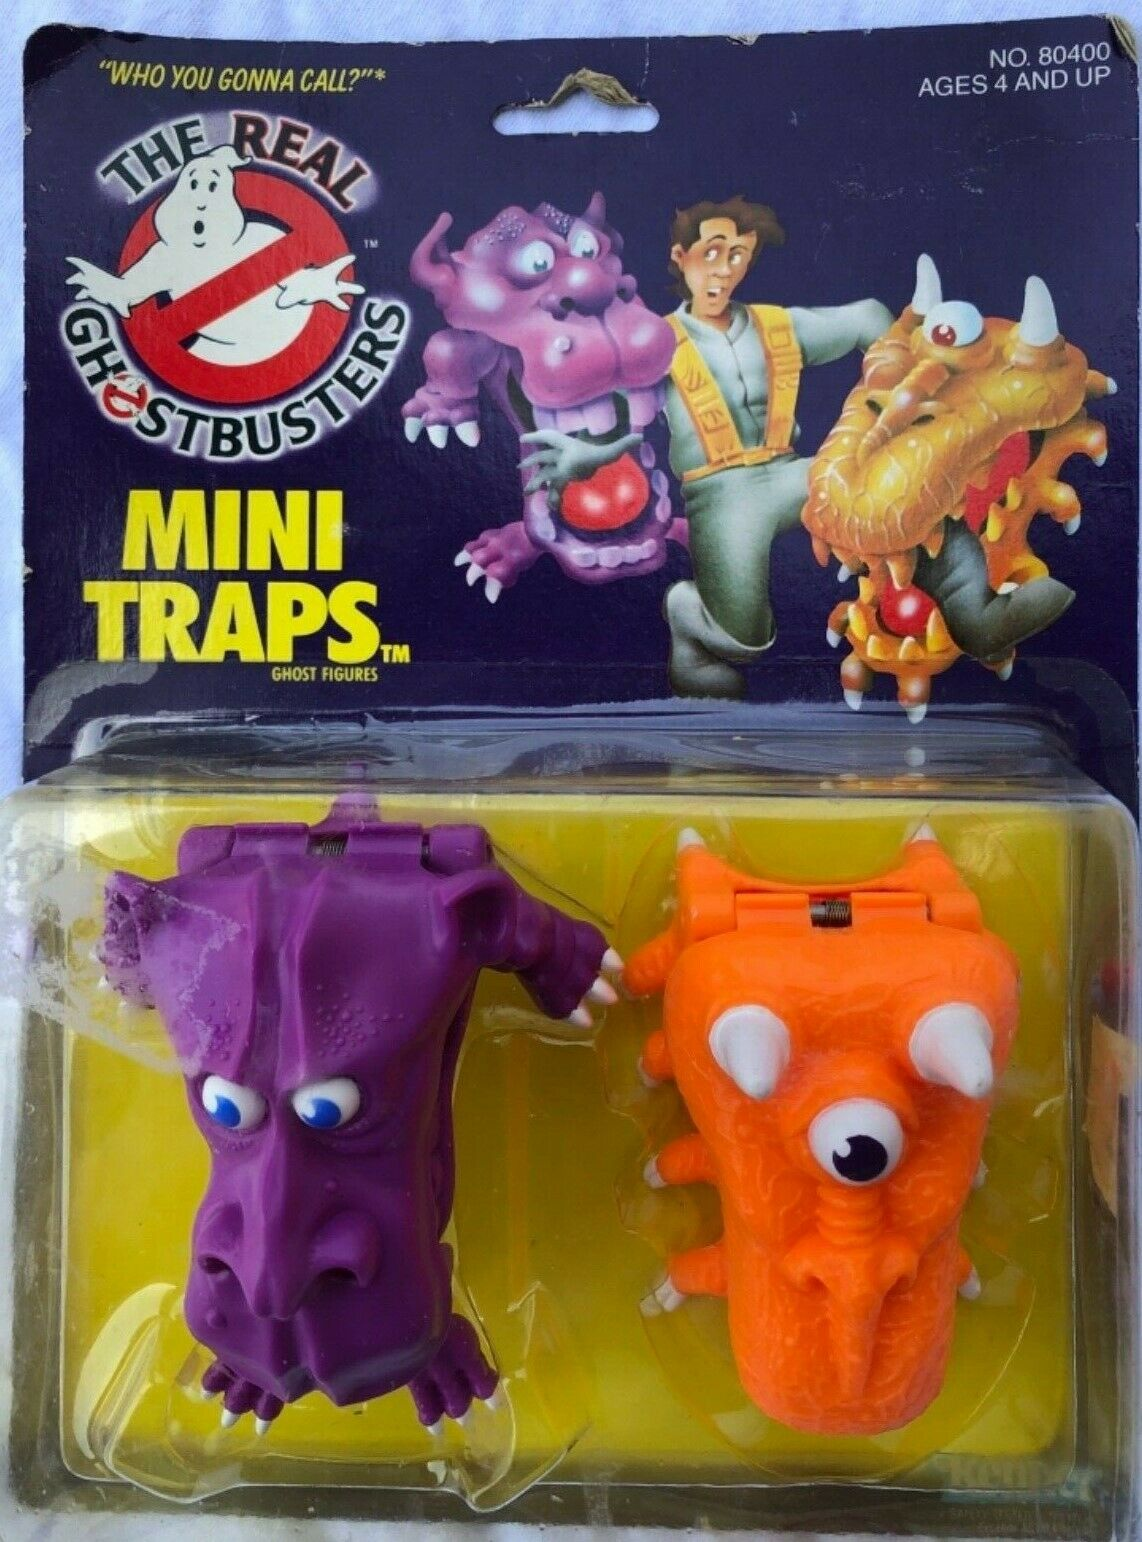 MOC 1984 86 MINI TRAPS THE REAL GHOSTBUSTERS KENNER